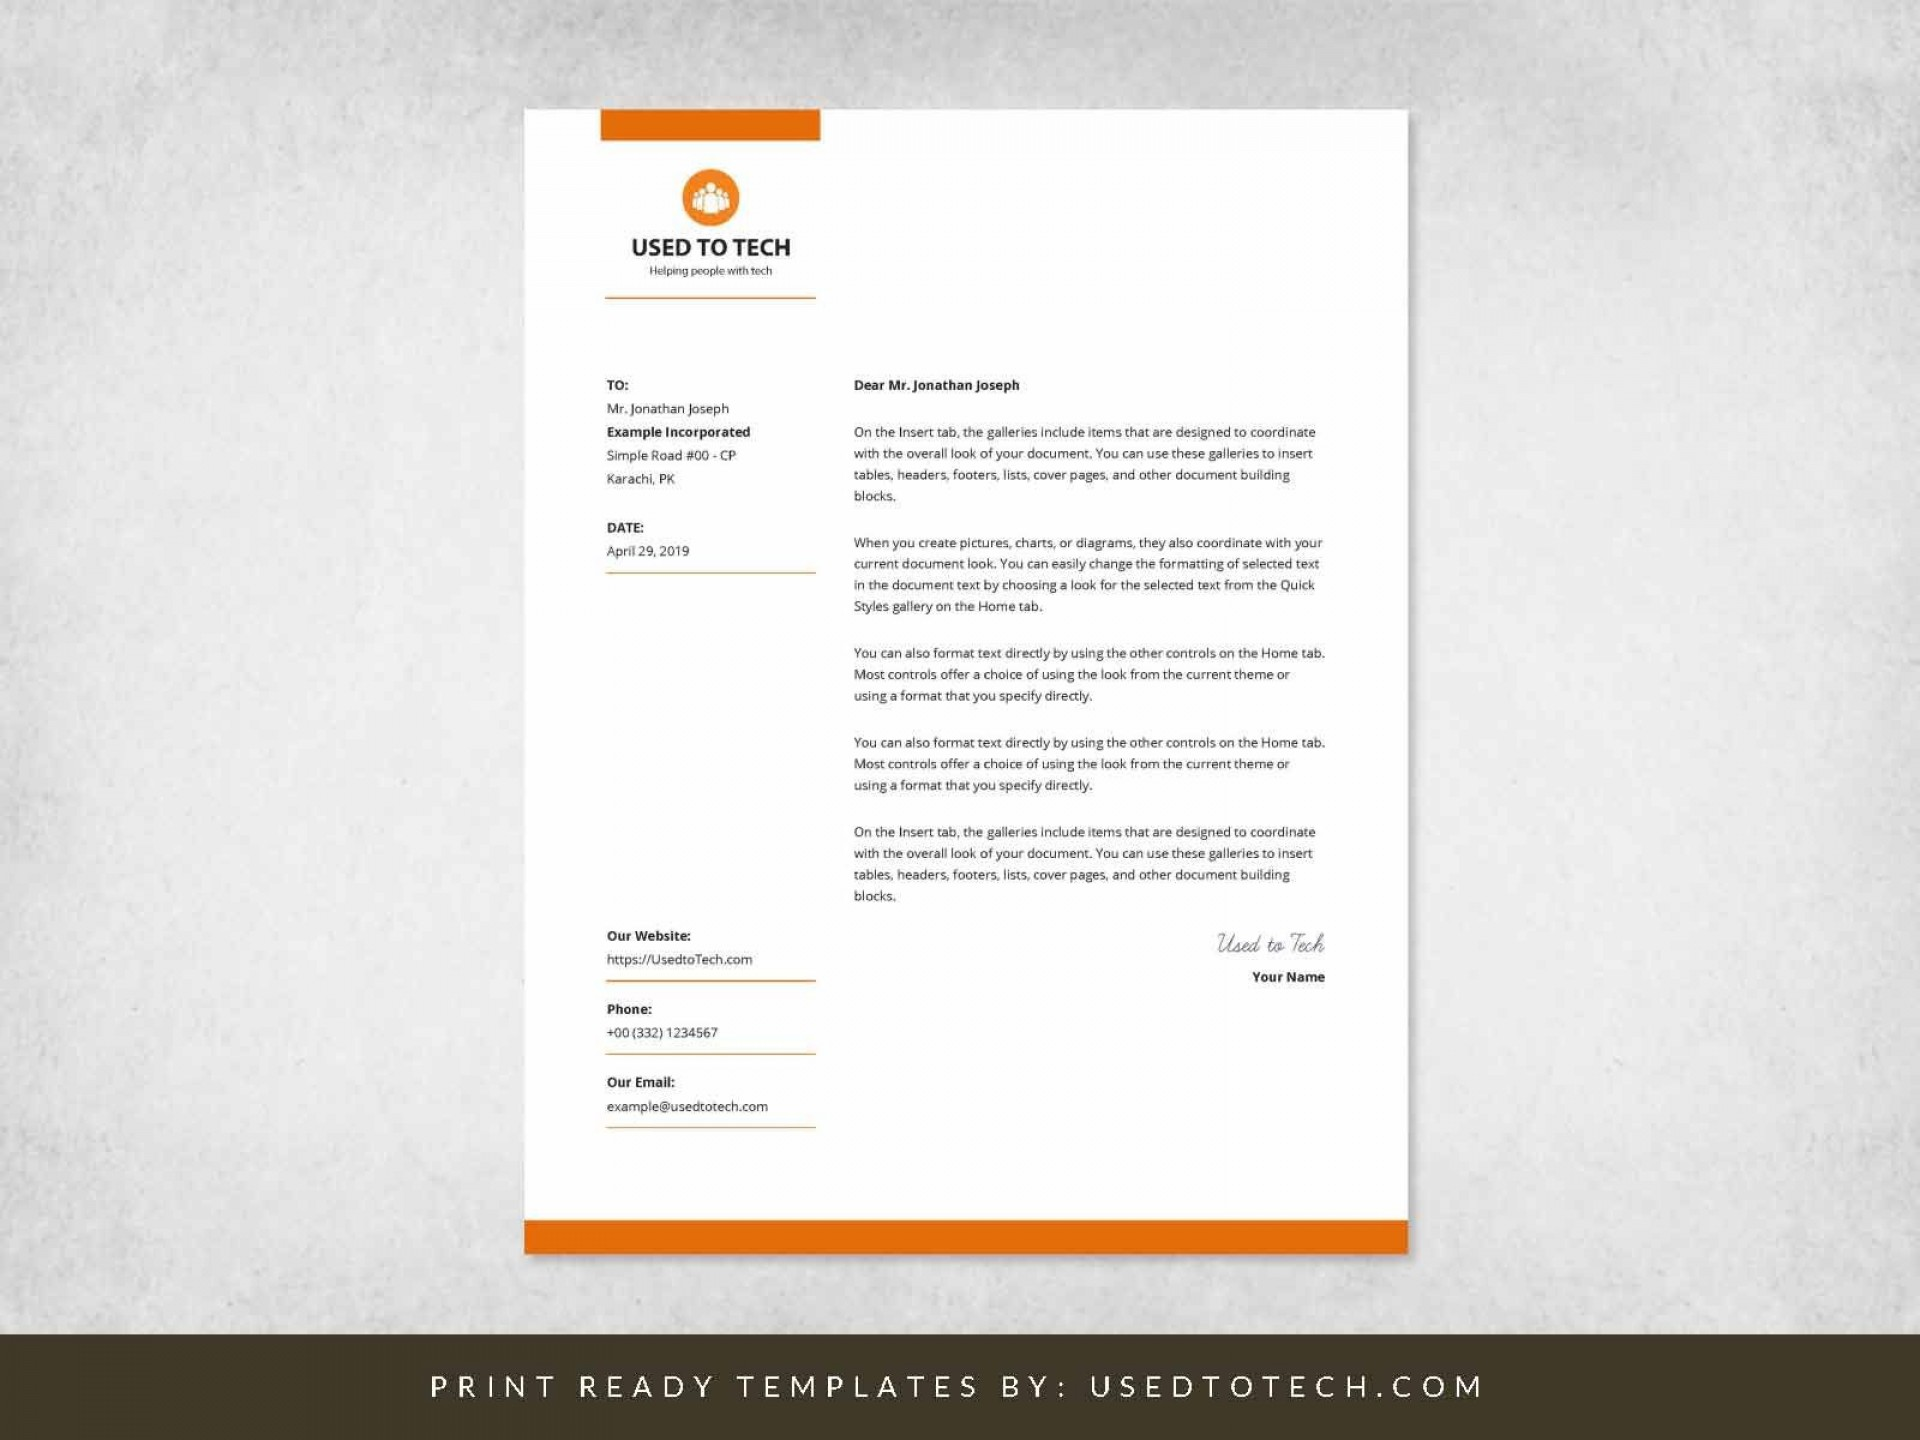 001 Imposing Letterhead Template Free Download Word Image  Restaurant Microsoft Format In1920